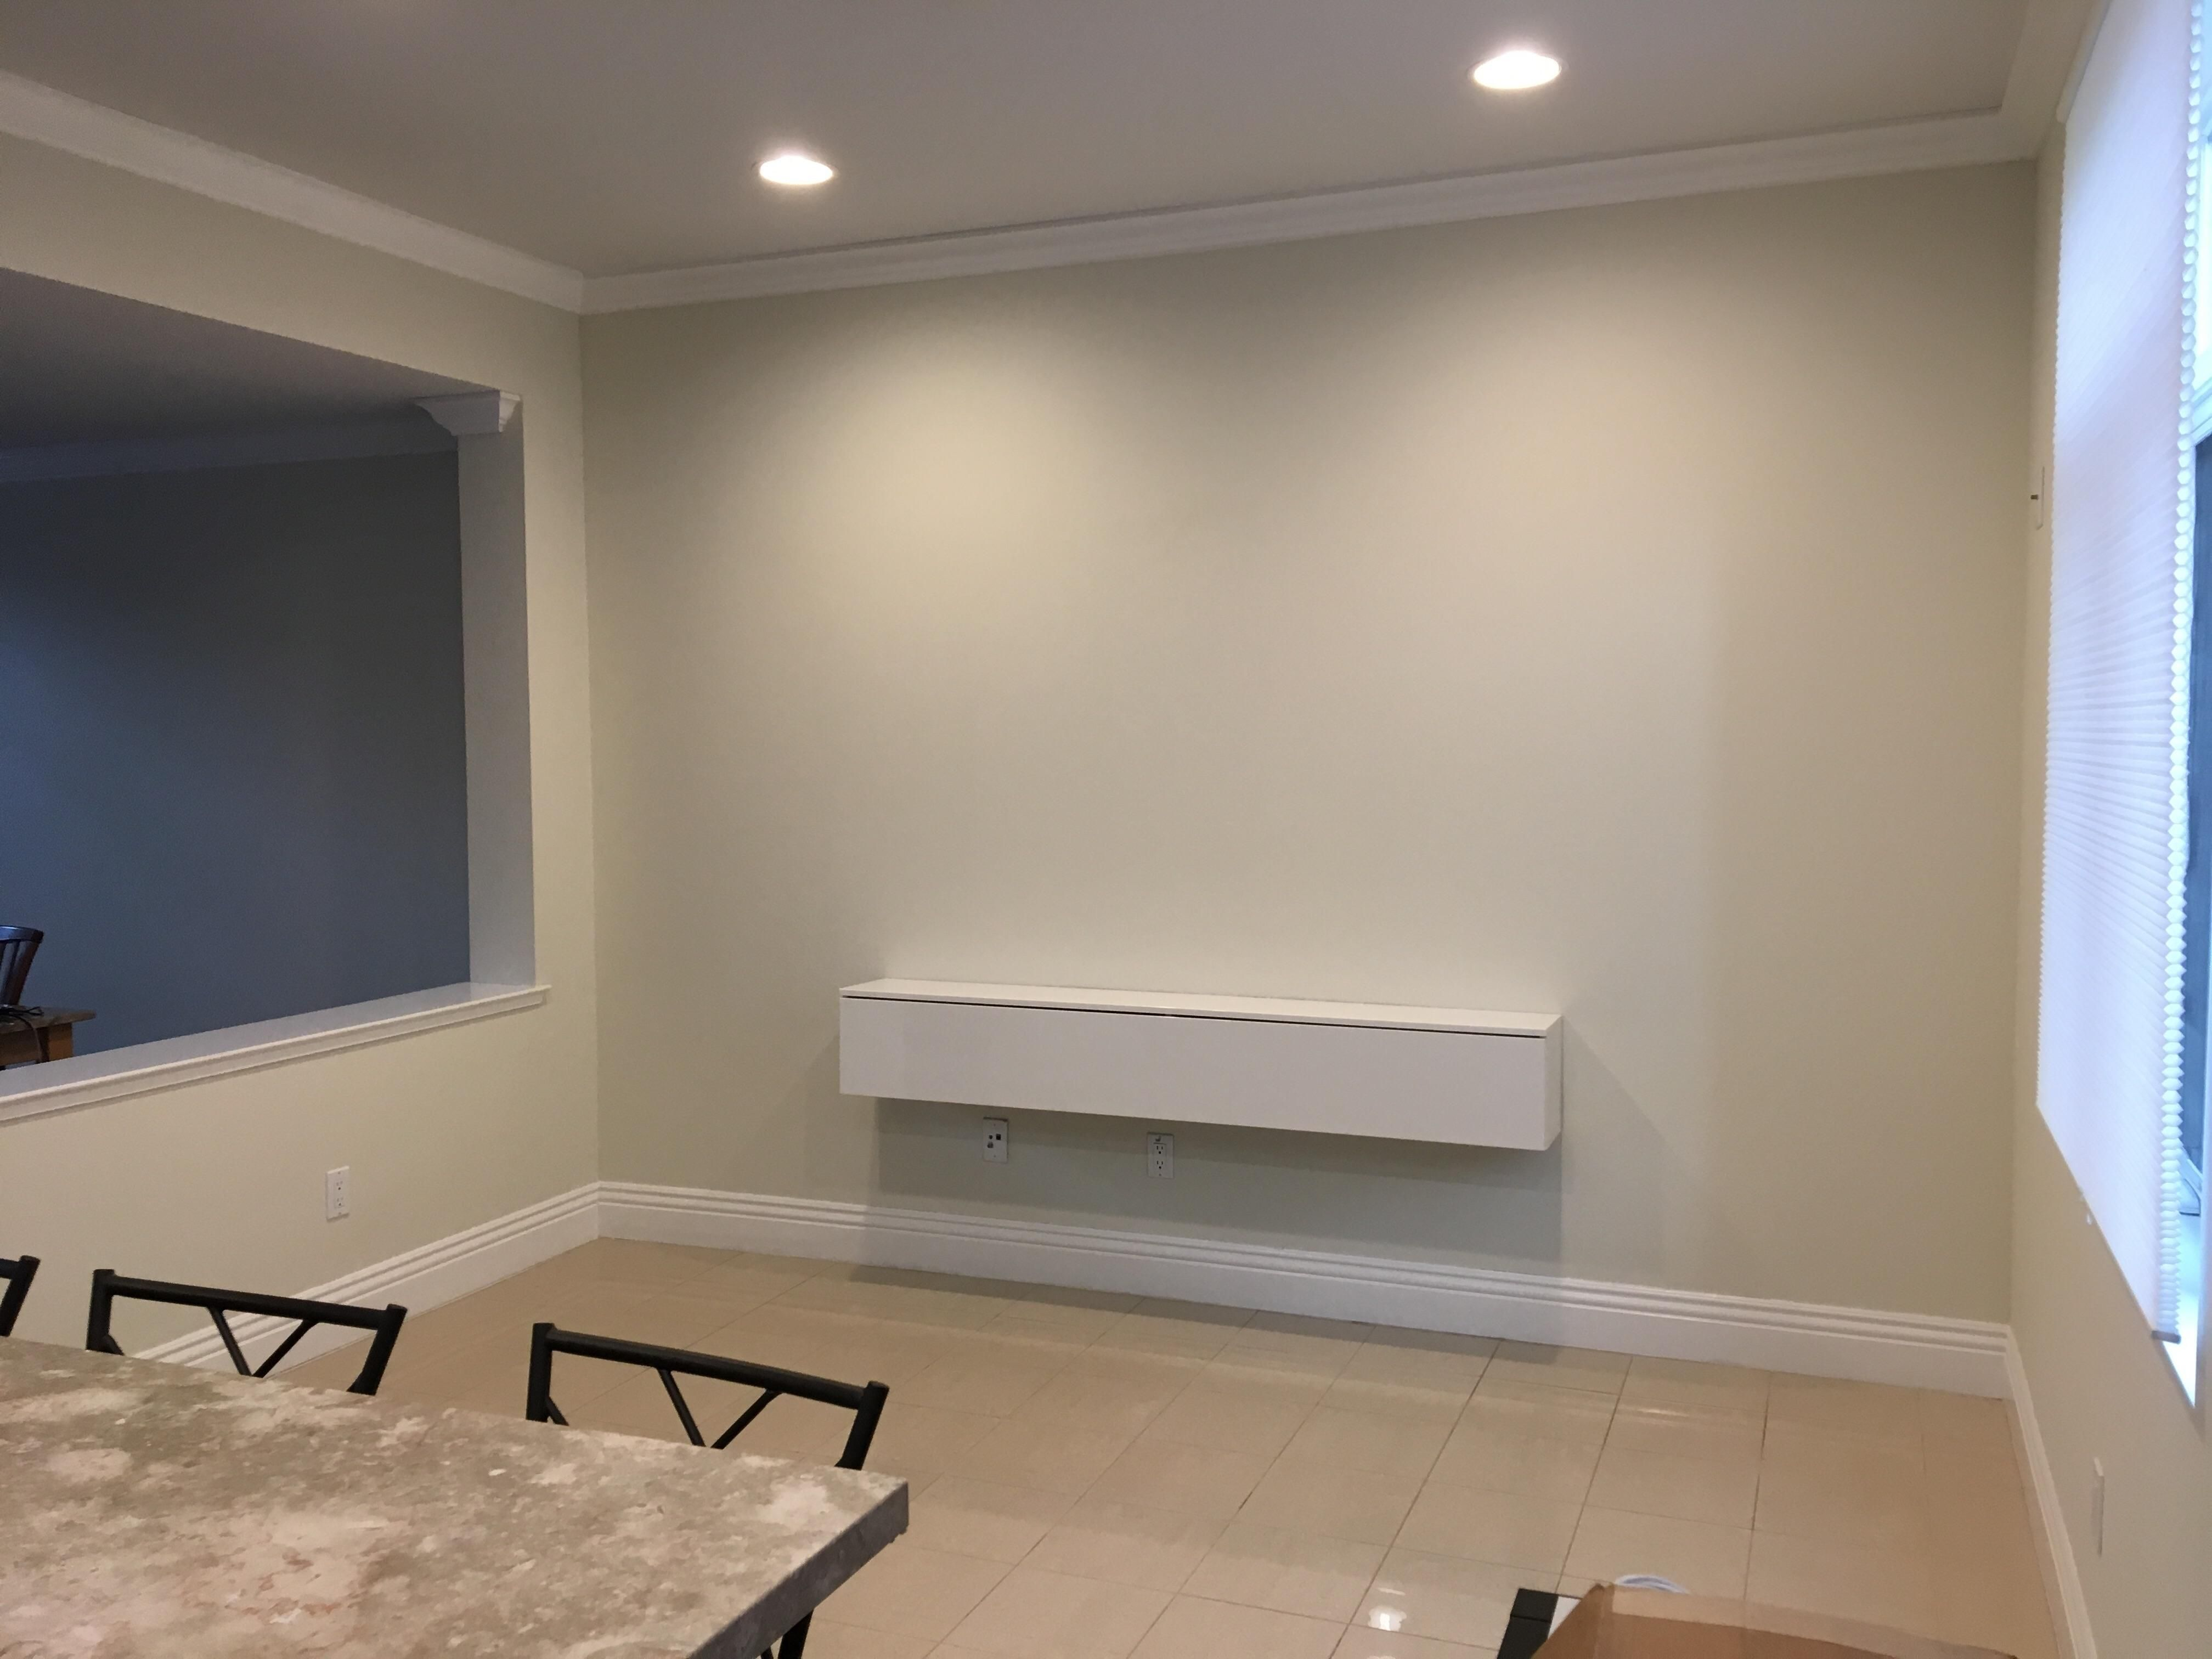 What To Do With Empty Kitchen Dining Space 144 Inches X 100 Inches Https I Redd It B49mc9y Interior Design Inspiration Interior Design Apartment Living Room